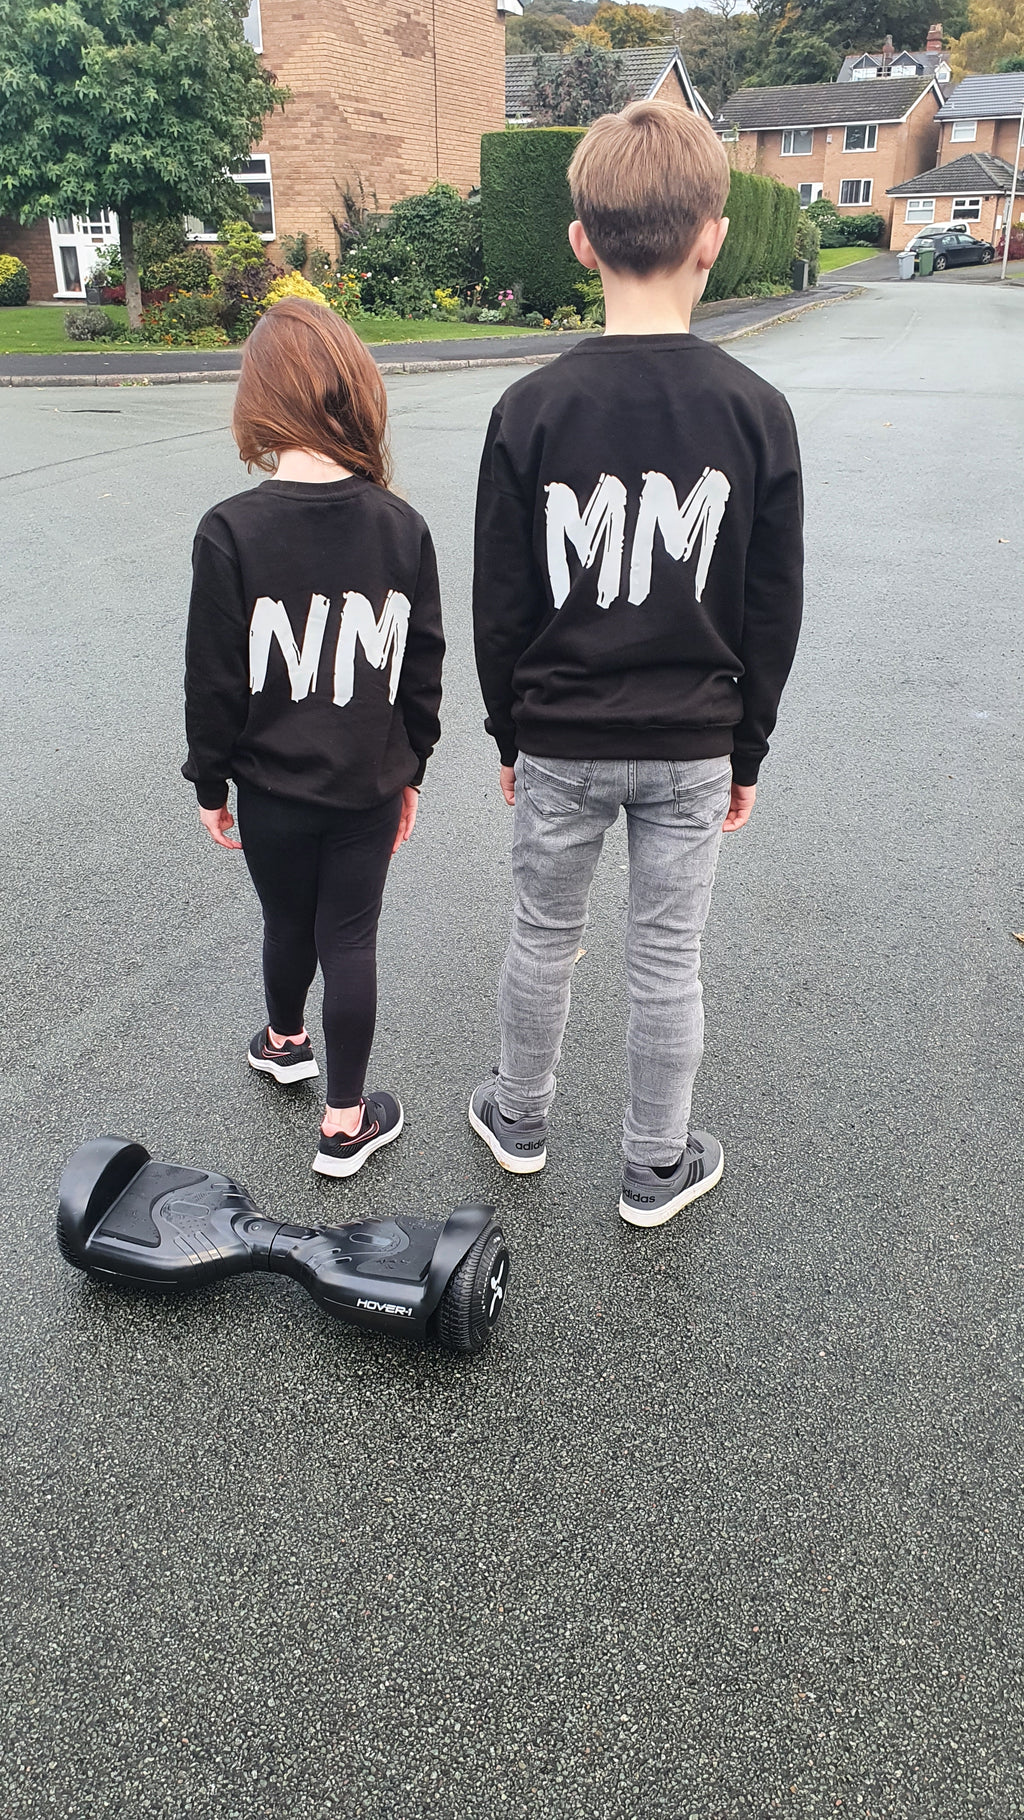 Kids Personalised Sweatshirt - Available in Black & White